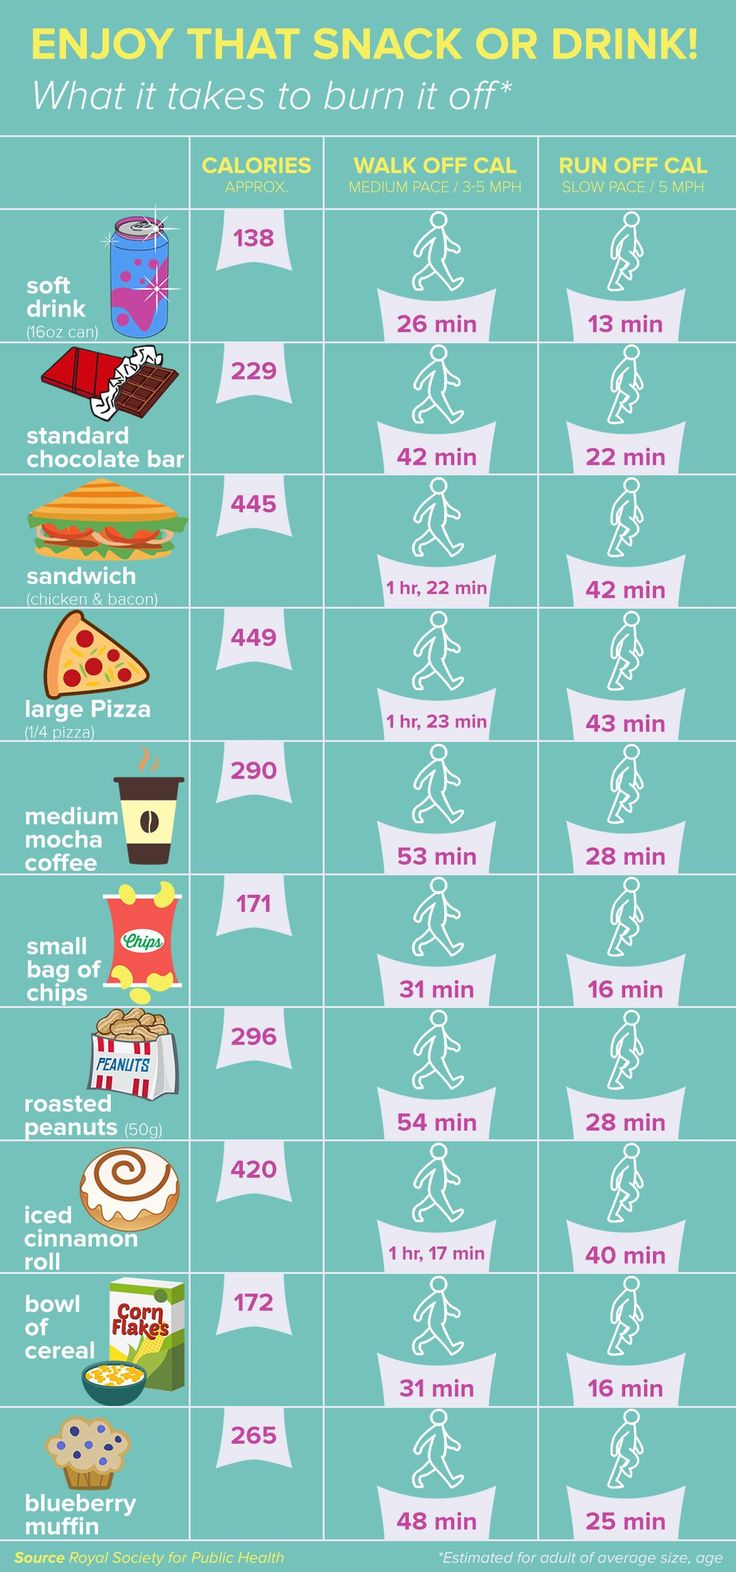 You might not think of much having that slice pizza or soda, but here's how long you will have to exercise to burn off those extra calories.